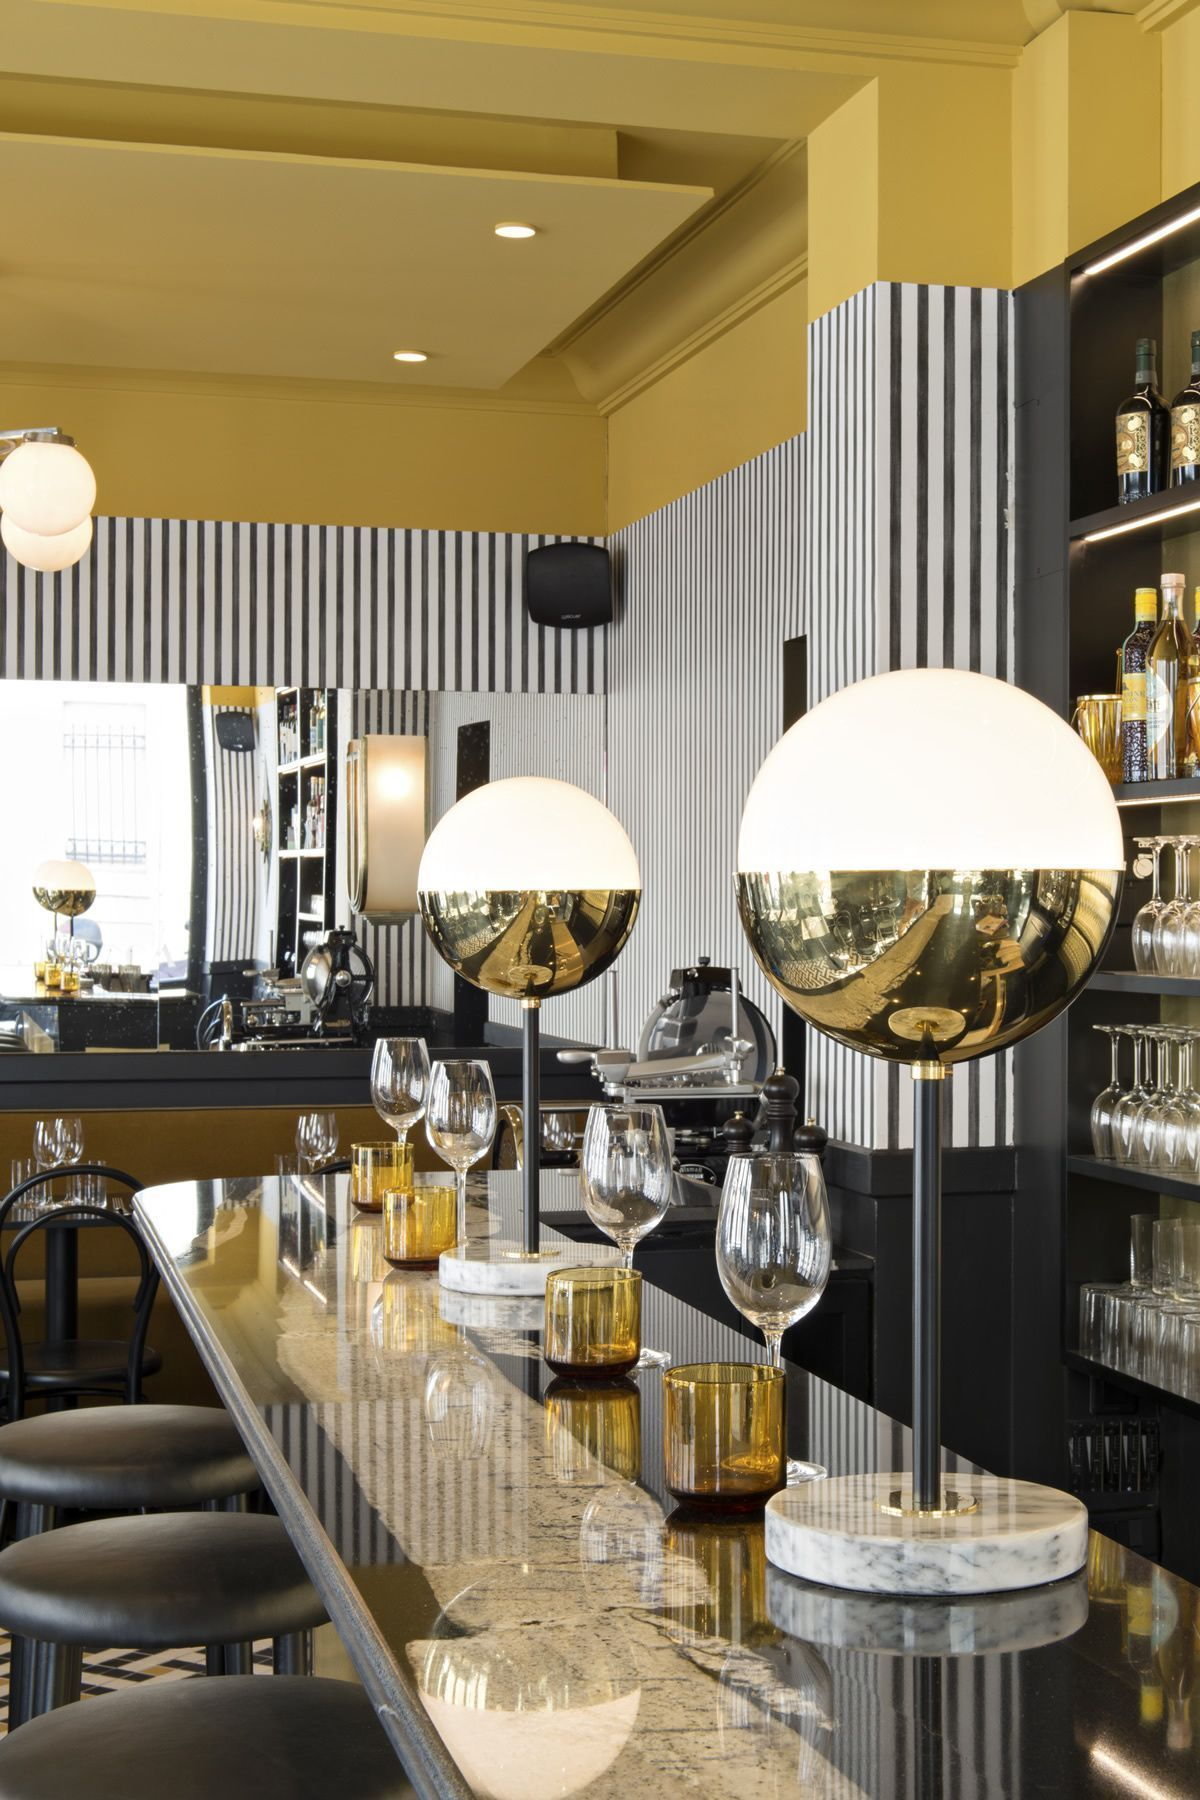 Discover a new italian restaurant totally inspired in parisian art deco inspirations ideas